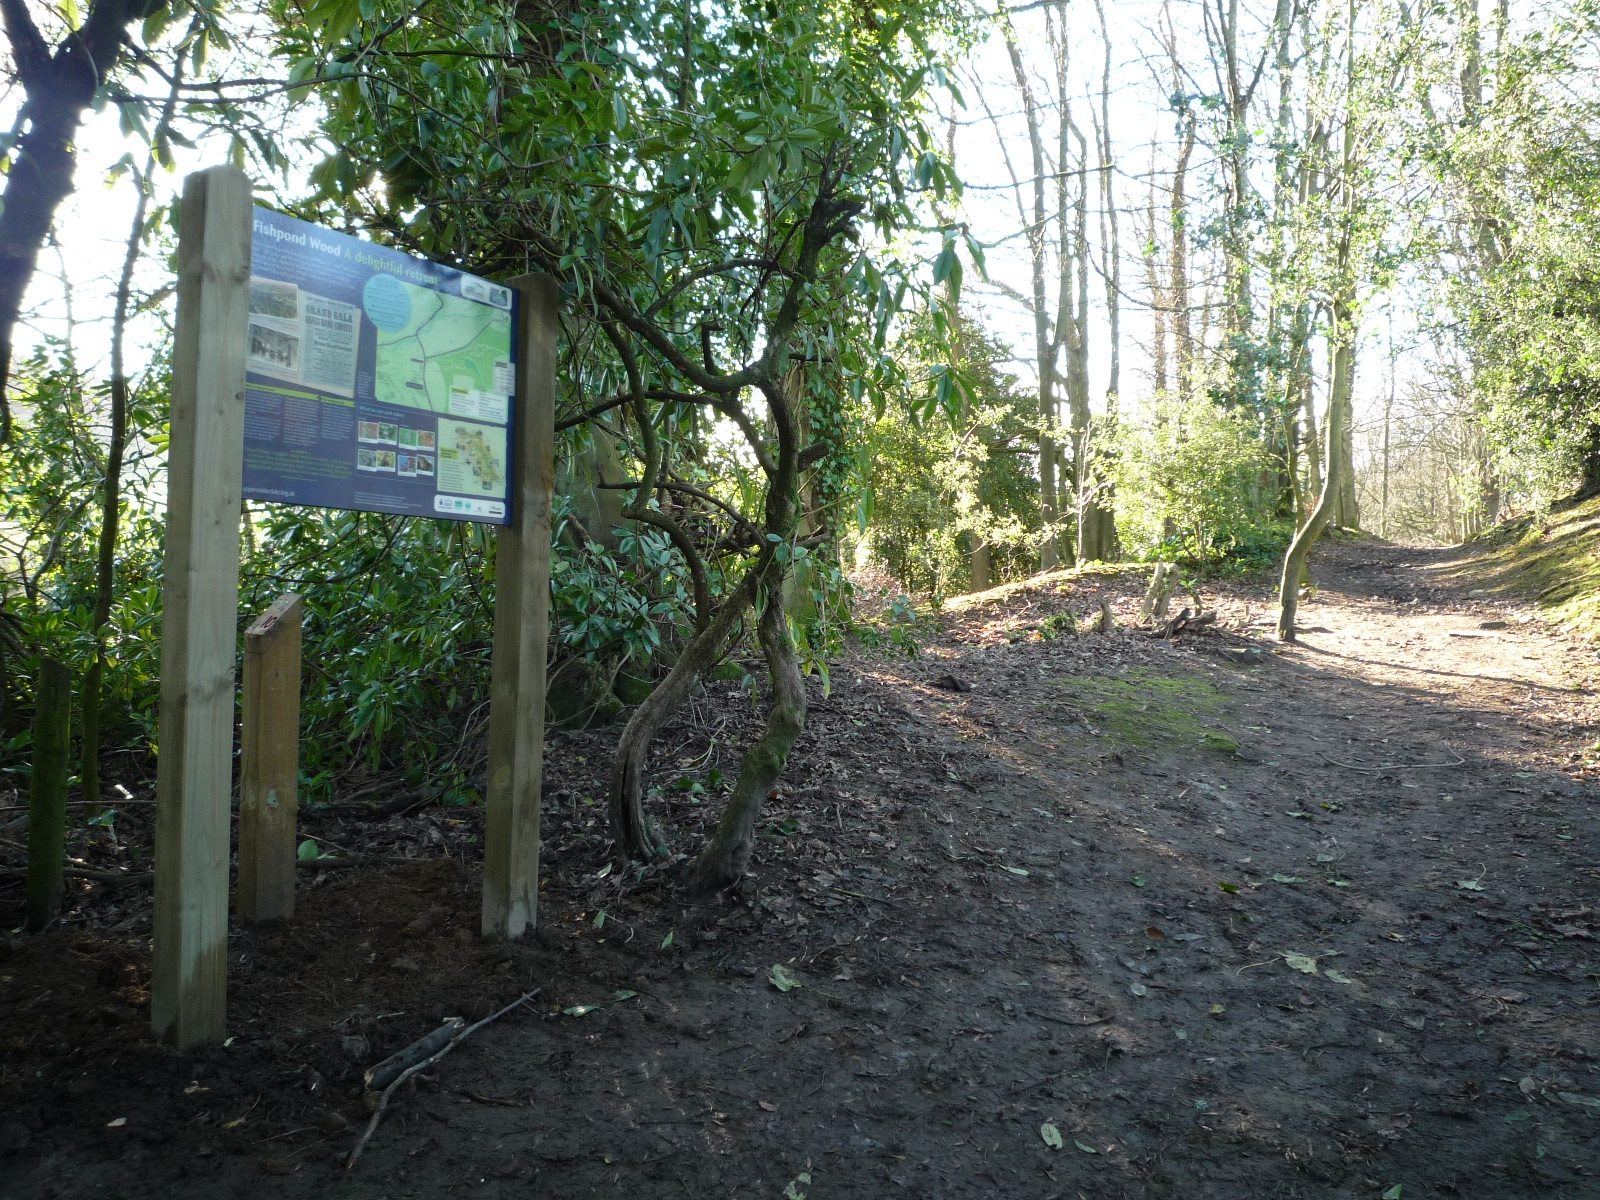 Wonderful image of New information panels for Fishpond Wood Nidderdale Landscape  with #7F8348 color and 1600x1200 pixels